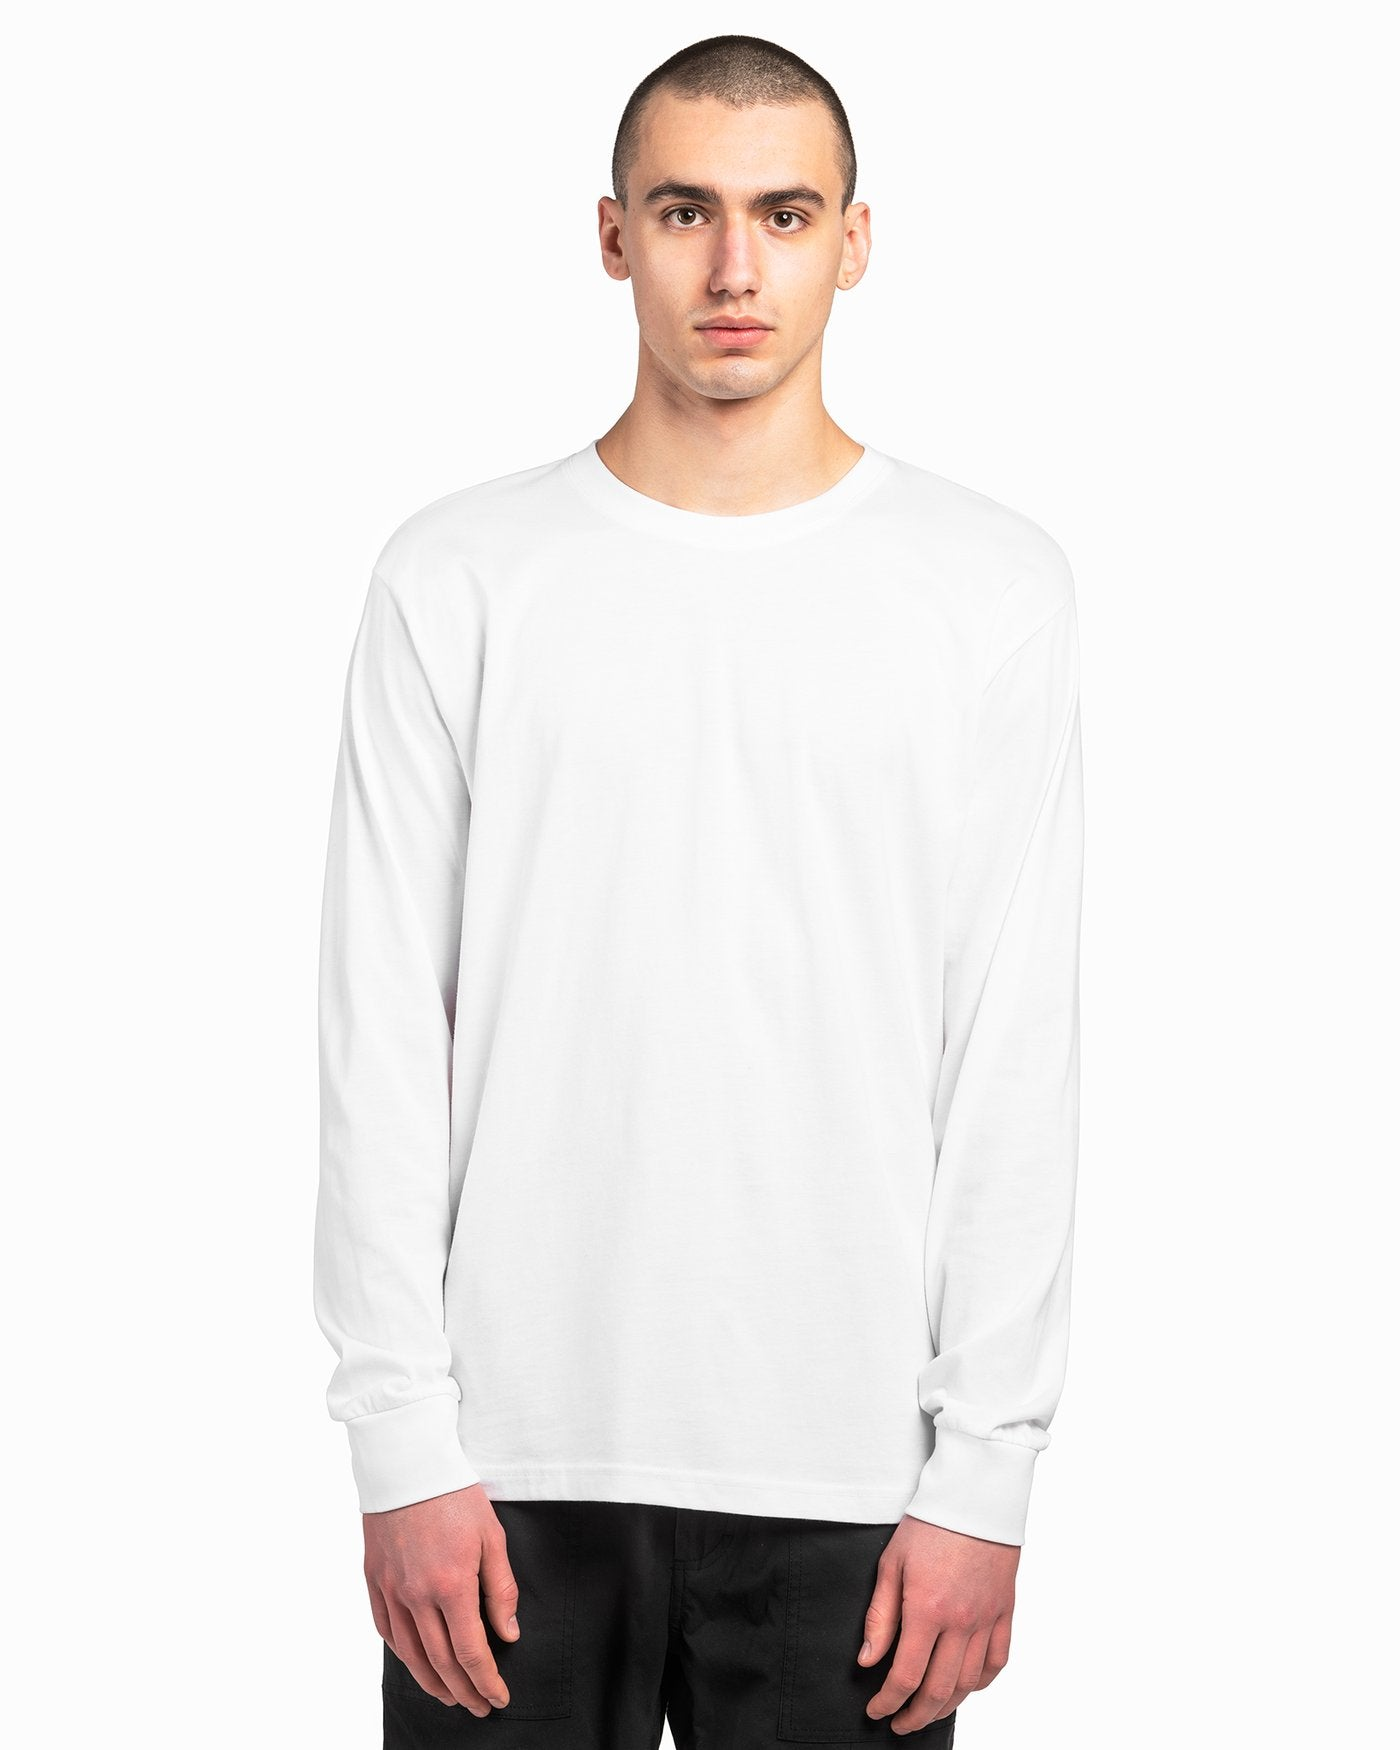 White American Grown Soft Supima® Cotton Men's Long Sleeve